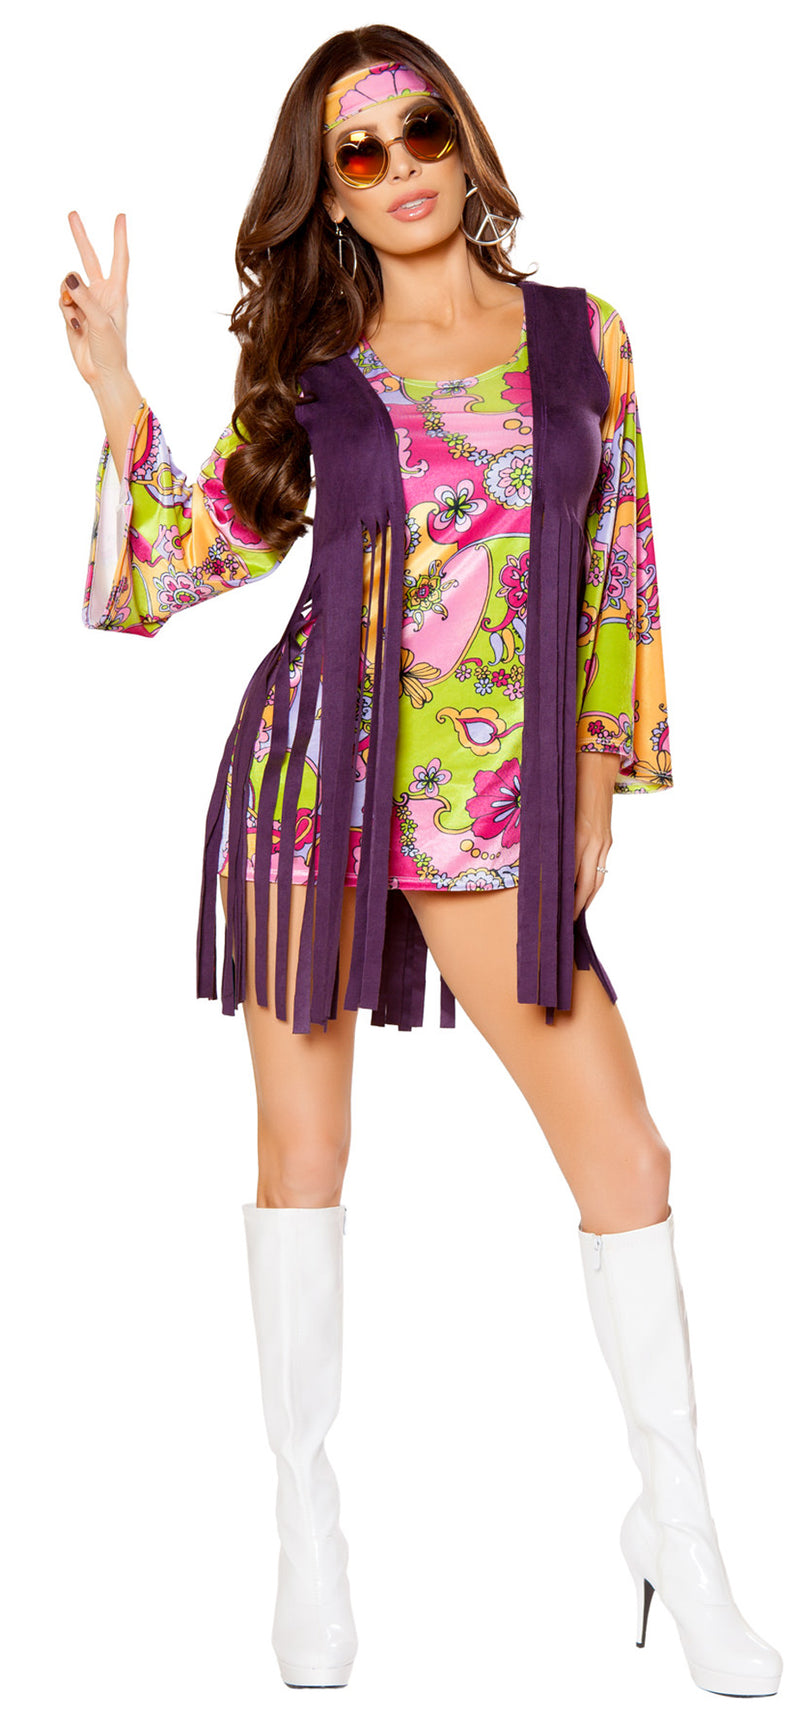 RM-10083 Groovy Hippie Costume Front